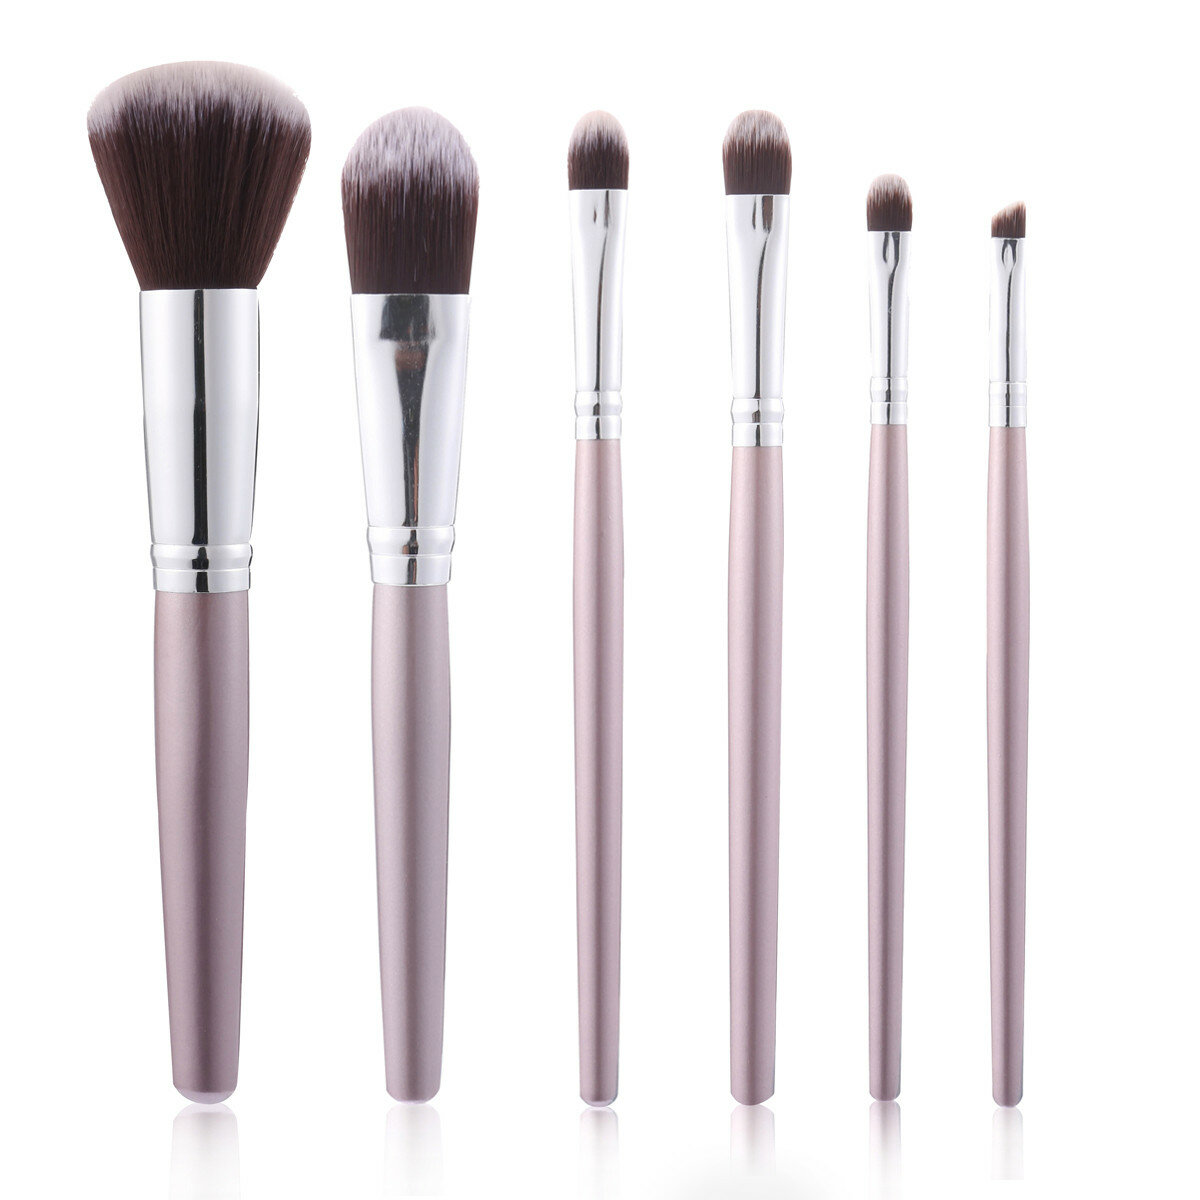 6Pcs Makeup Brushes Set Eye Shadow Foundation Blend Lips Liner Powder Cosmetics Tool